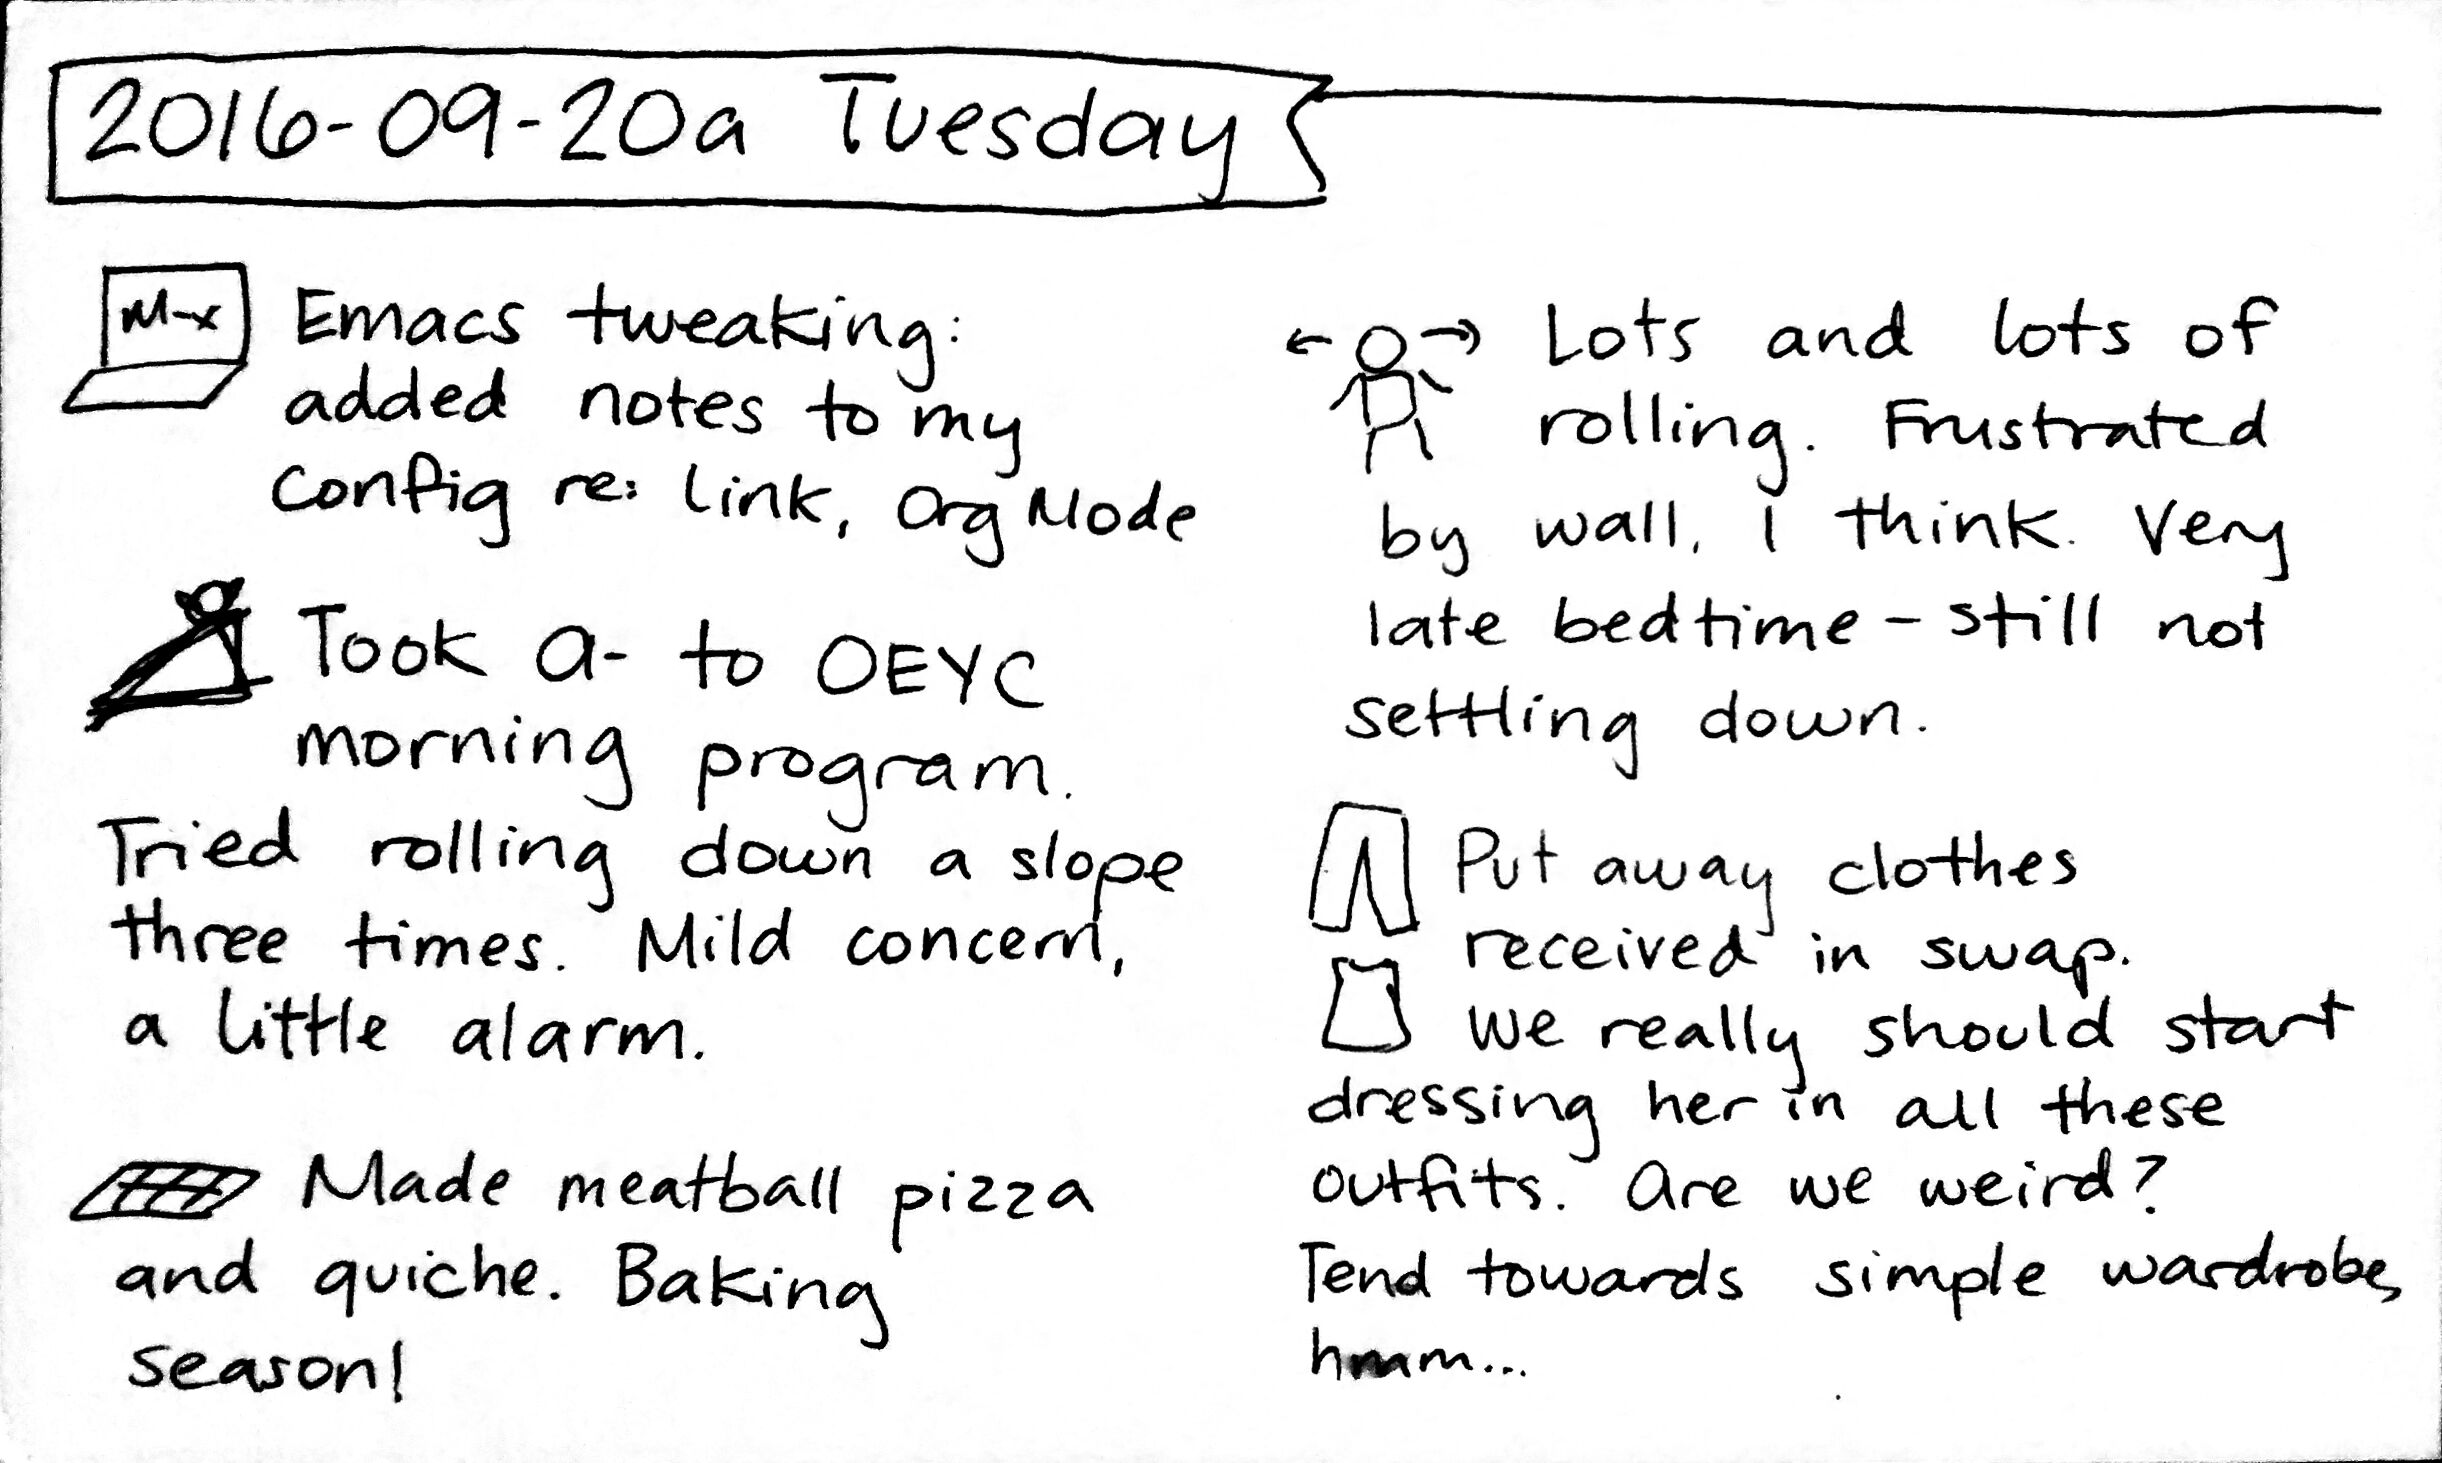 2016-09-20a Tuesday #daily #journal.jpg